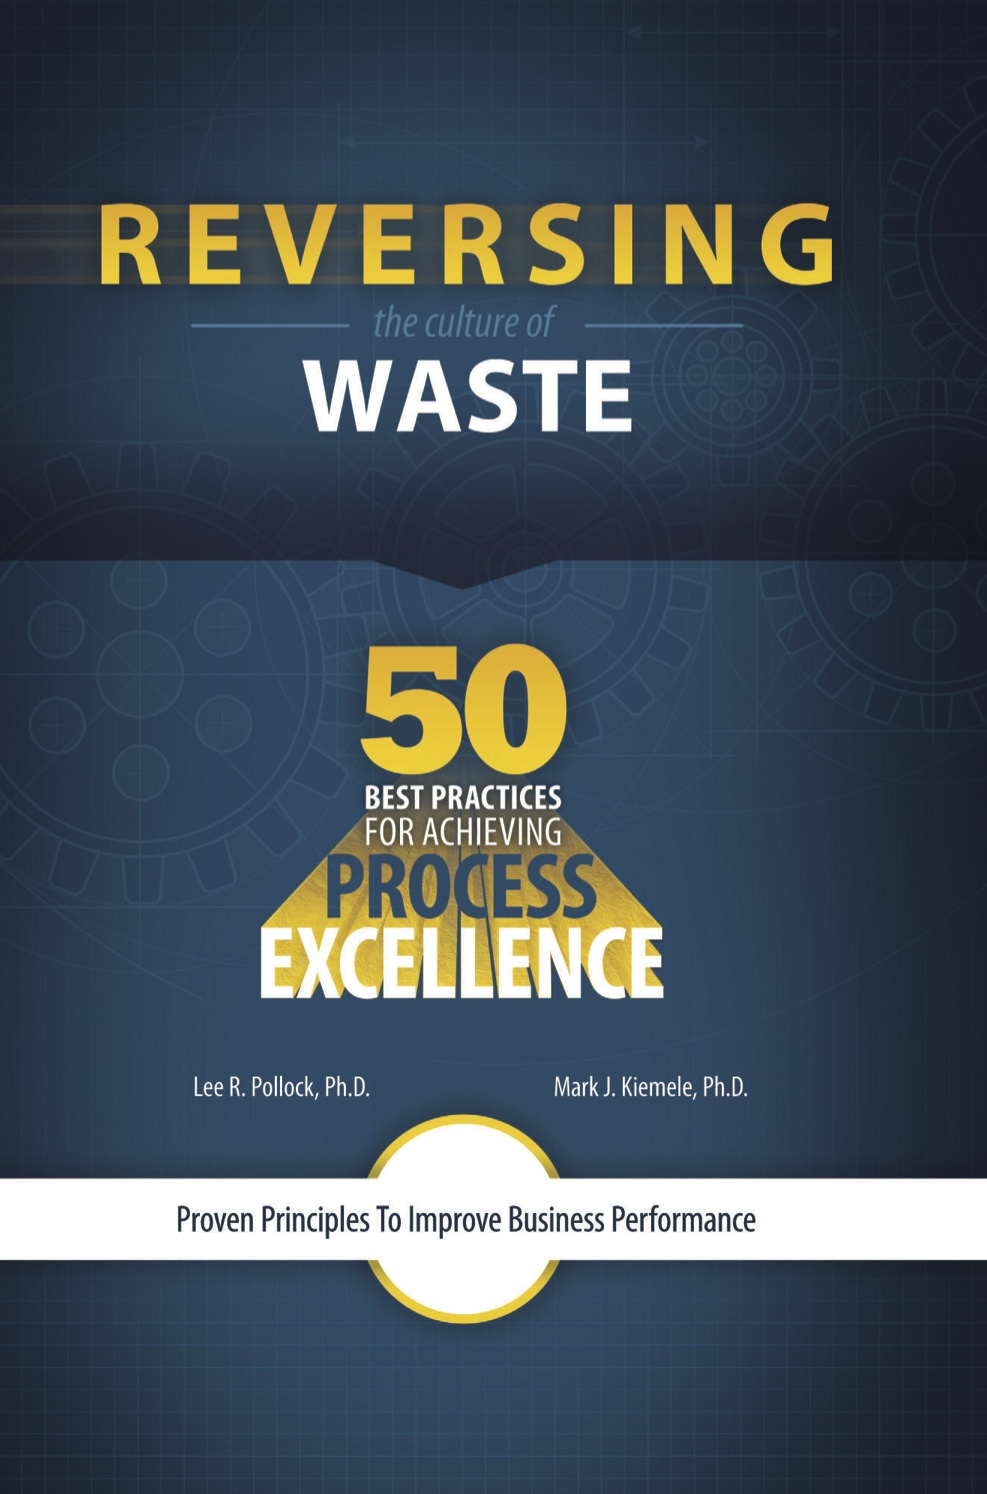 Reversing the Culture of Waste - 50 Best Practices for Achieving Process Excellence